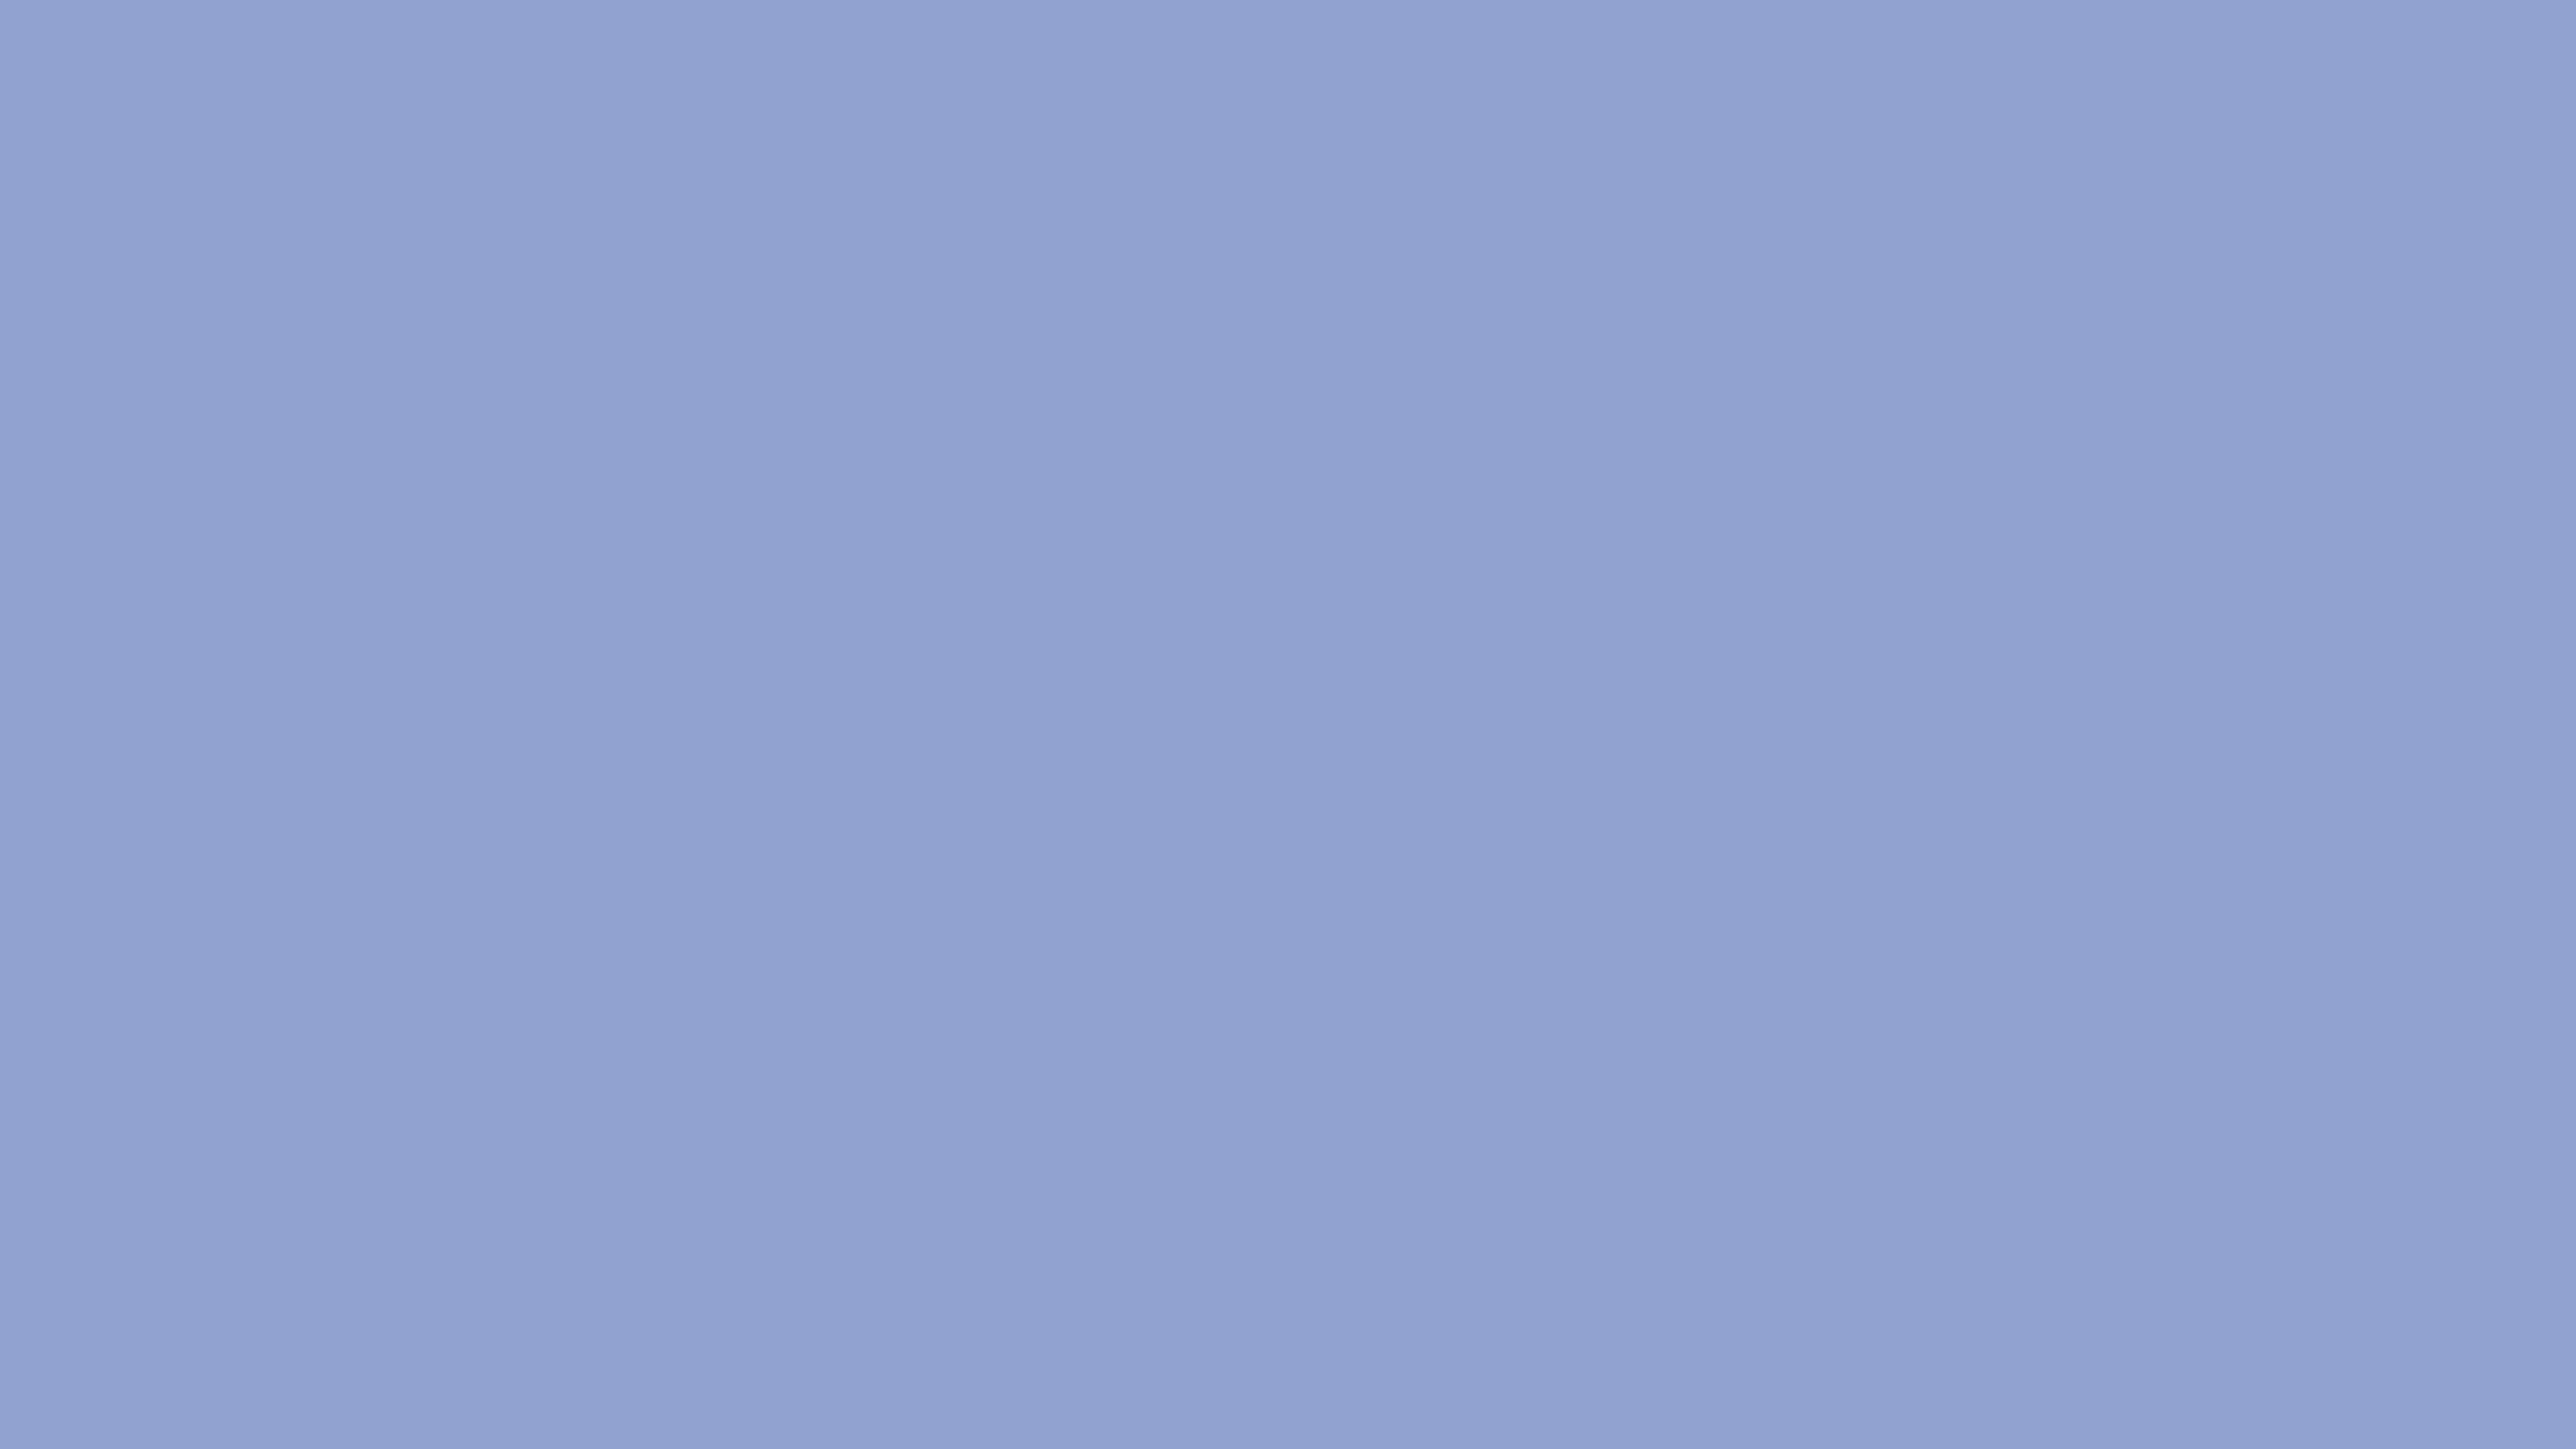 3840x2160 Ceil Solid Color Background